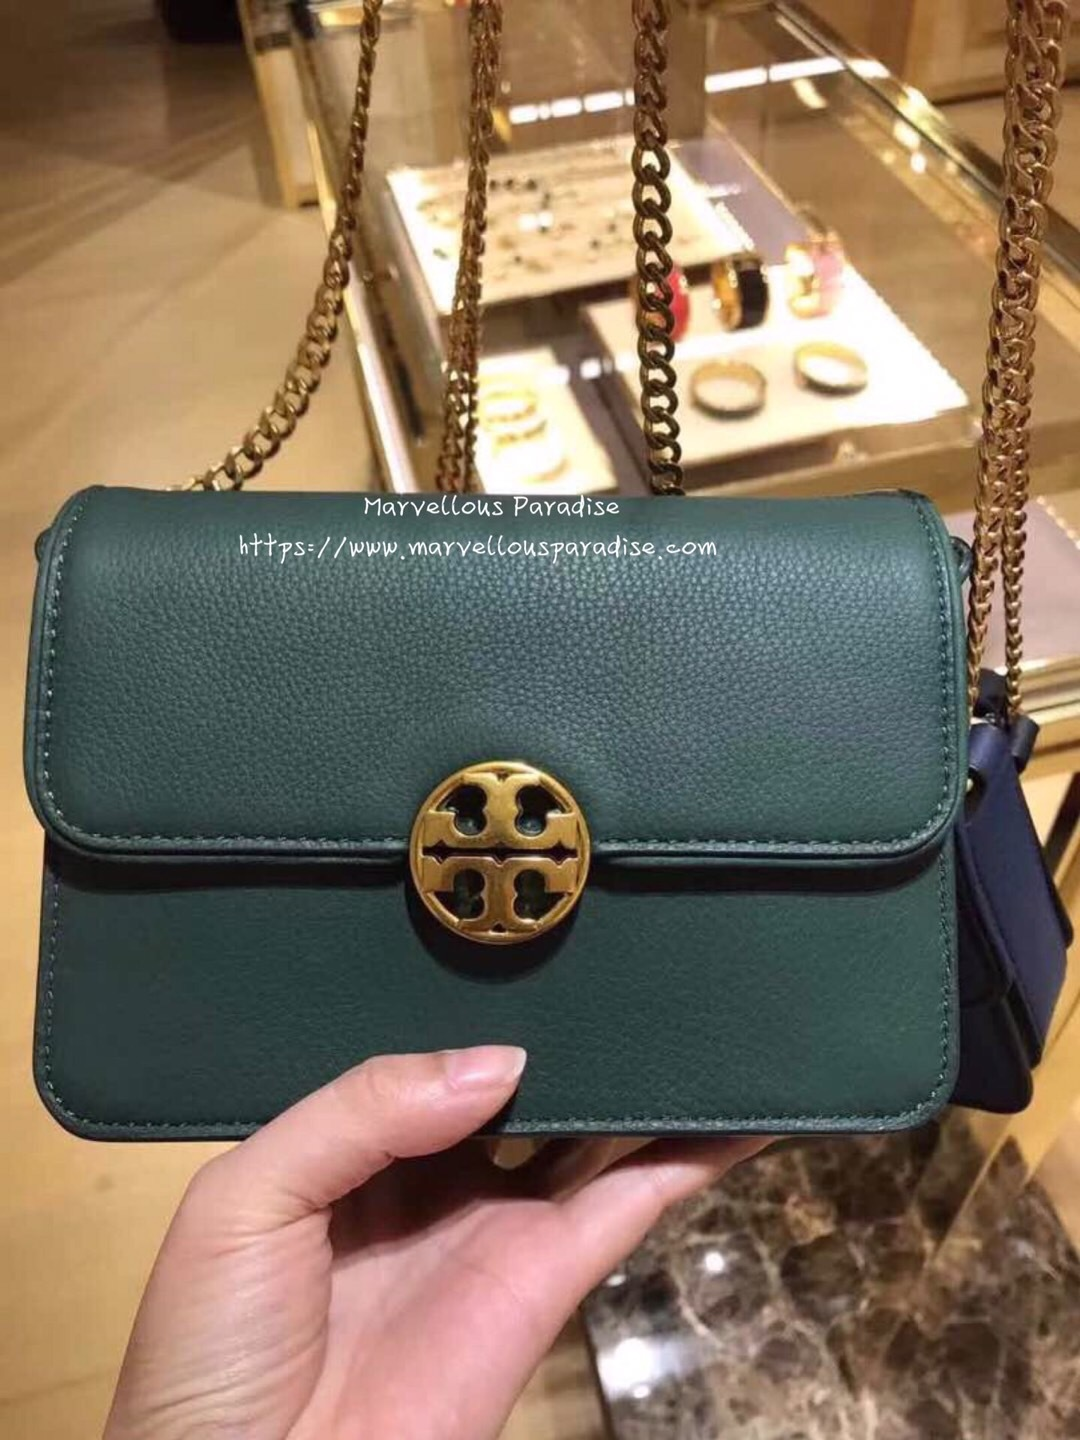 951dcebfc8e8 Tory Burch Chelsea Mini Crossbody – Luxe Paradise